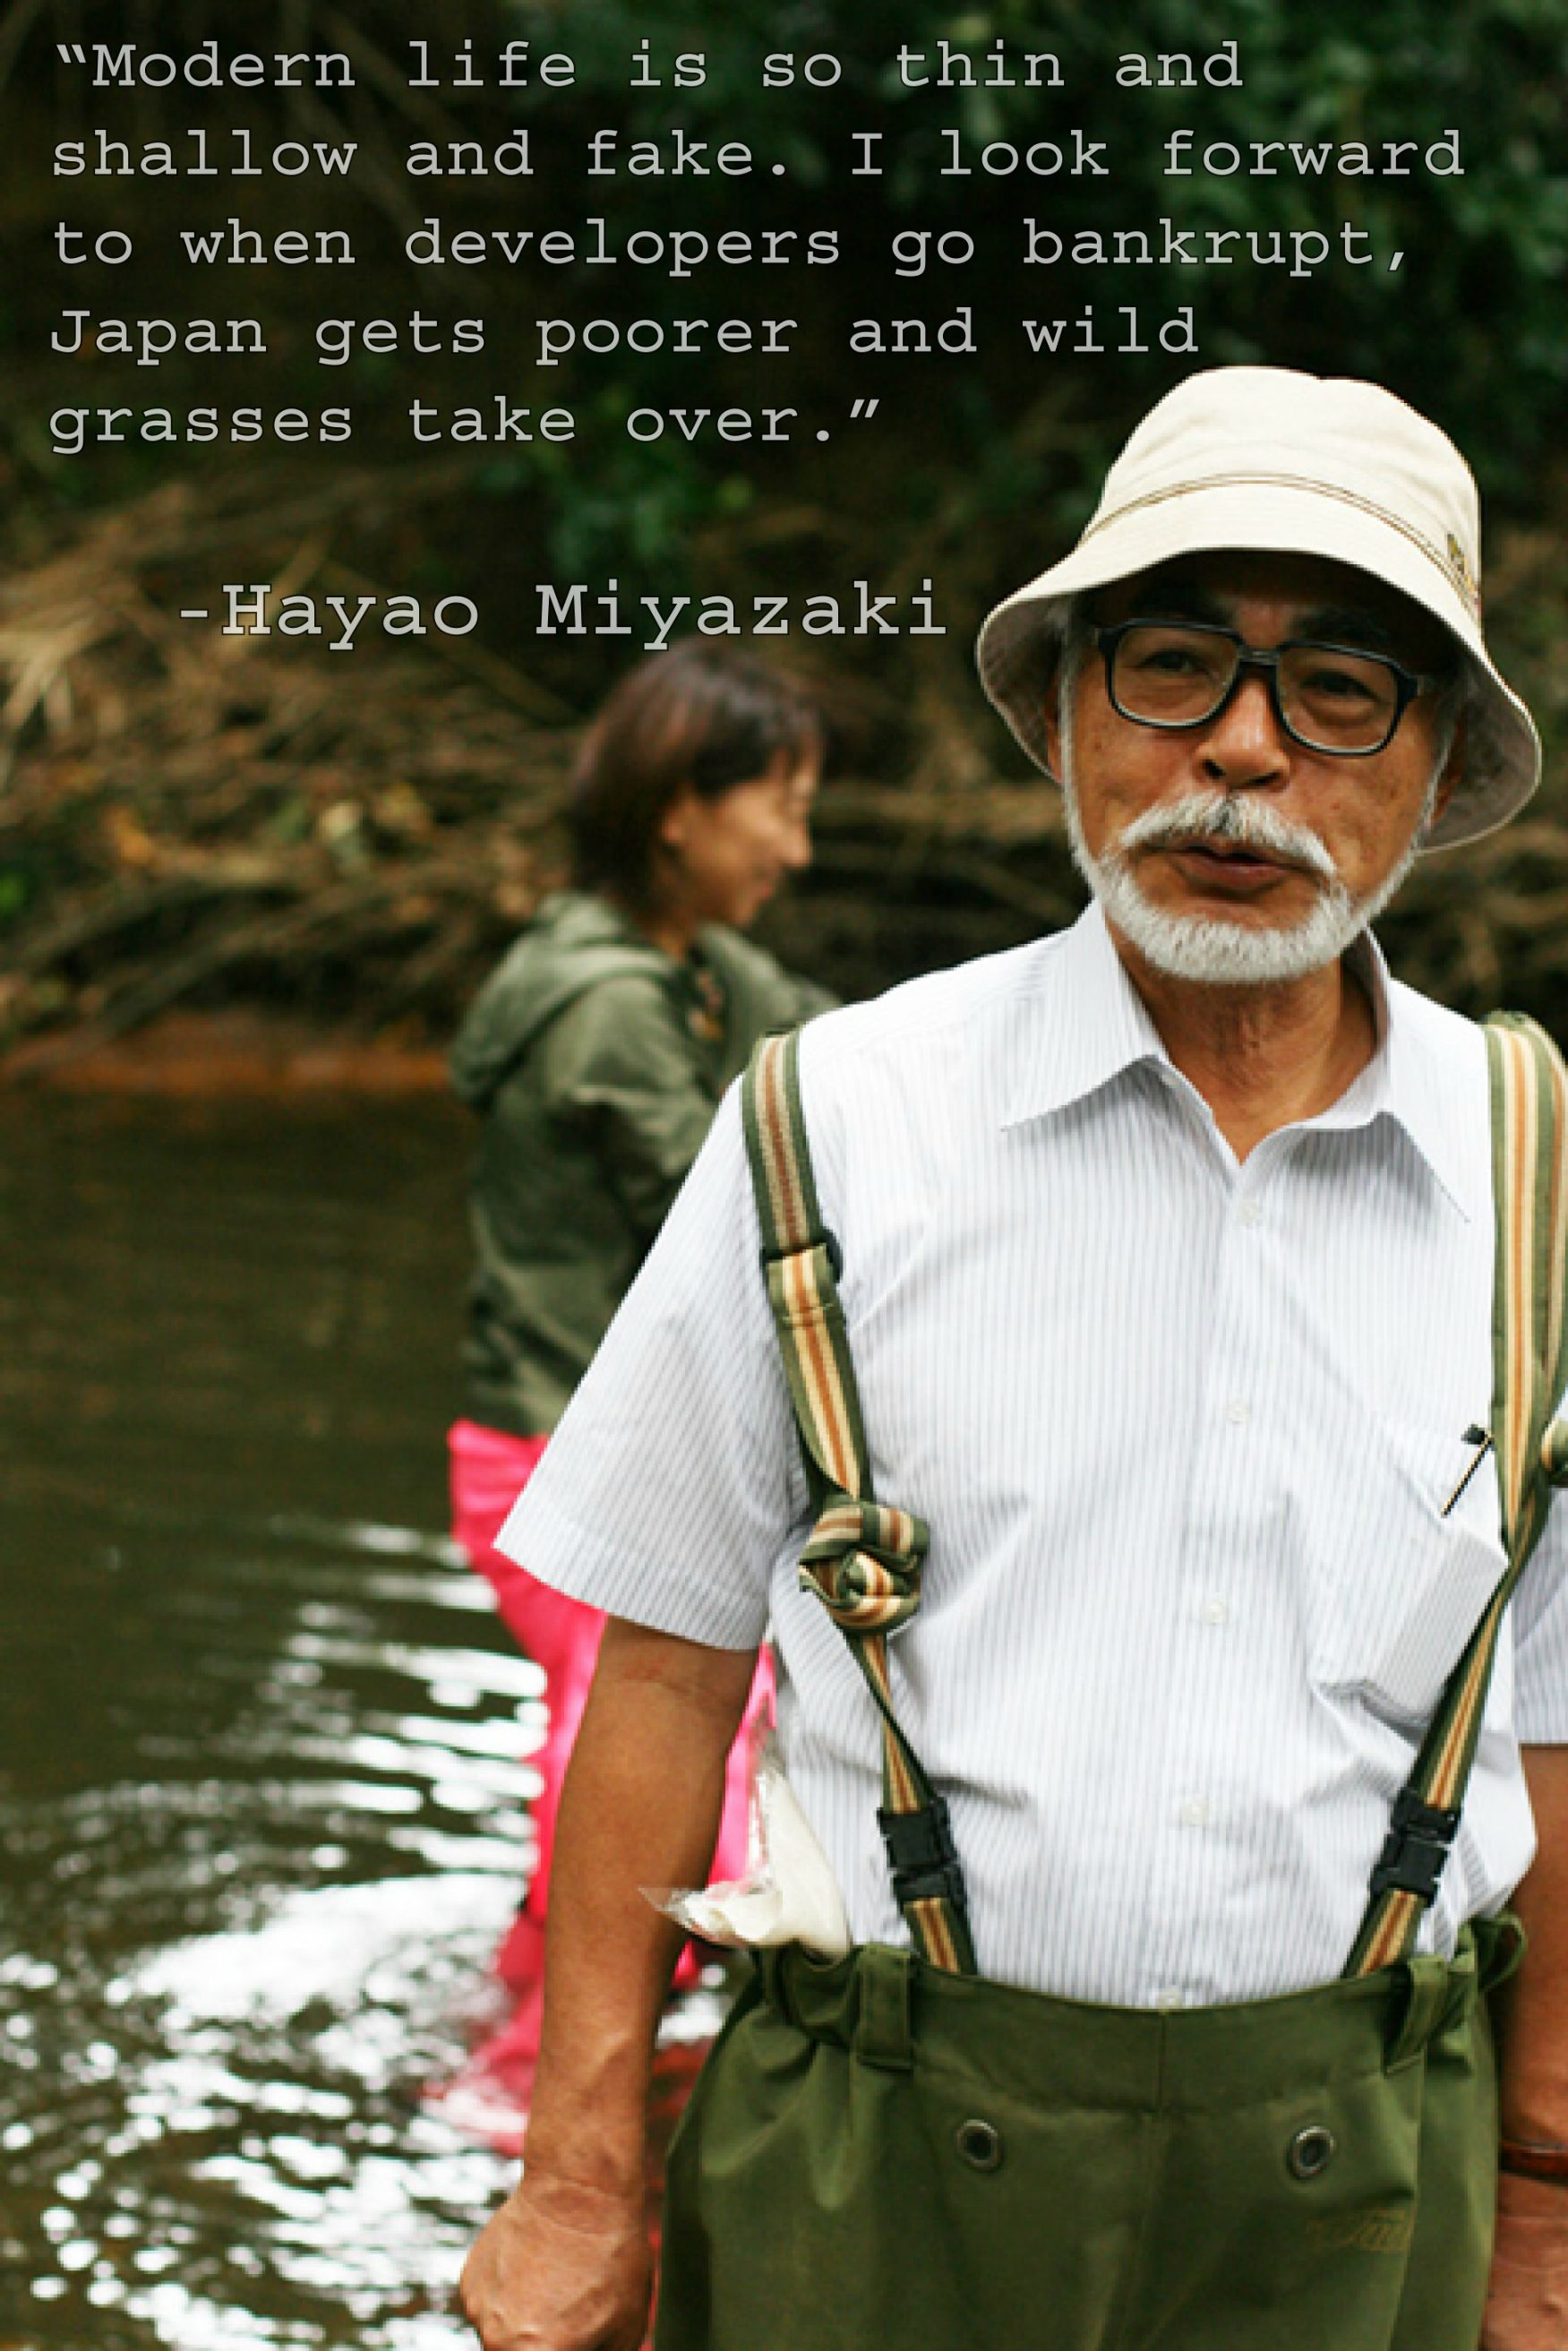 hayao miyazaki u0026 39 s quotes  famous and not much